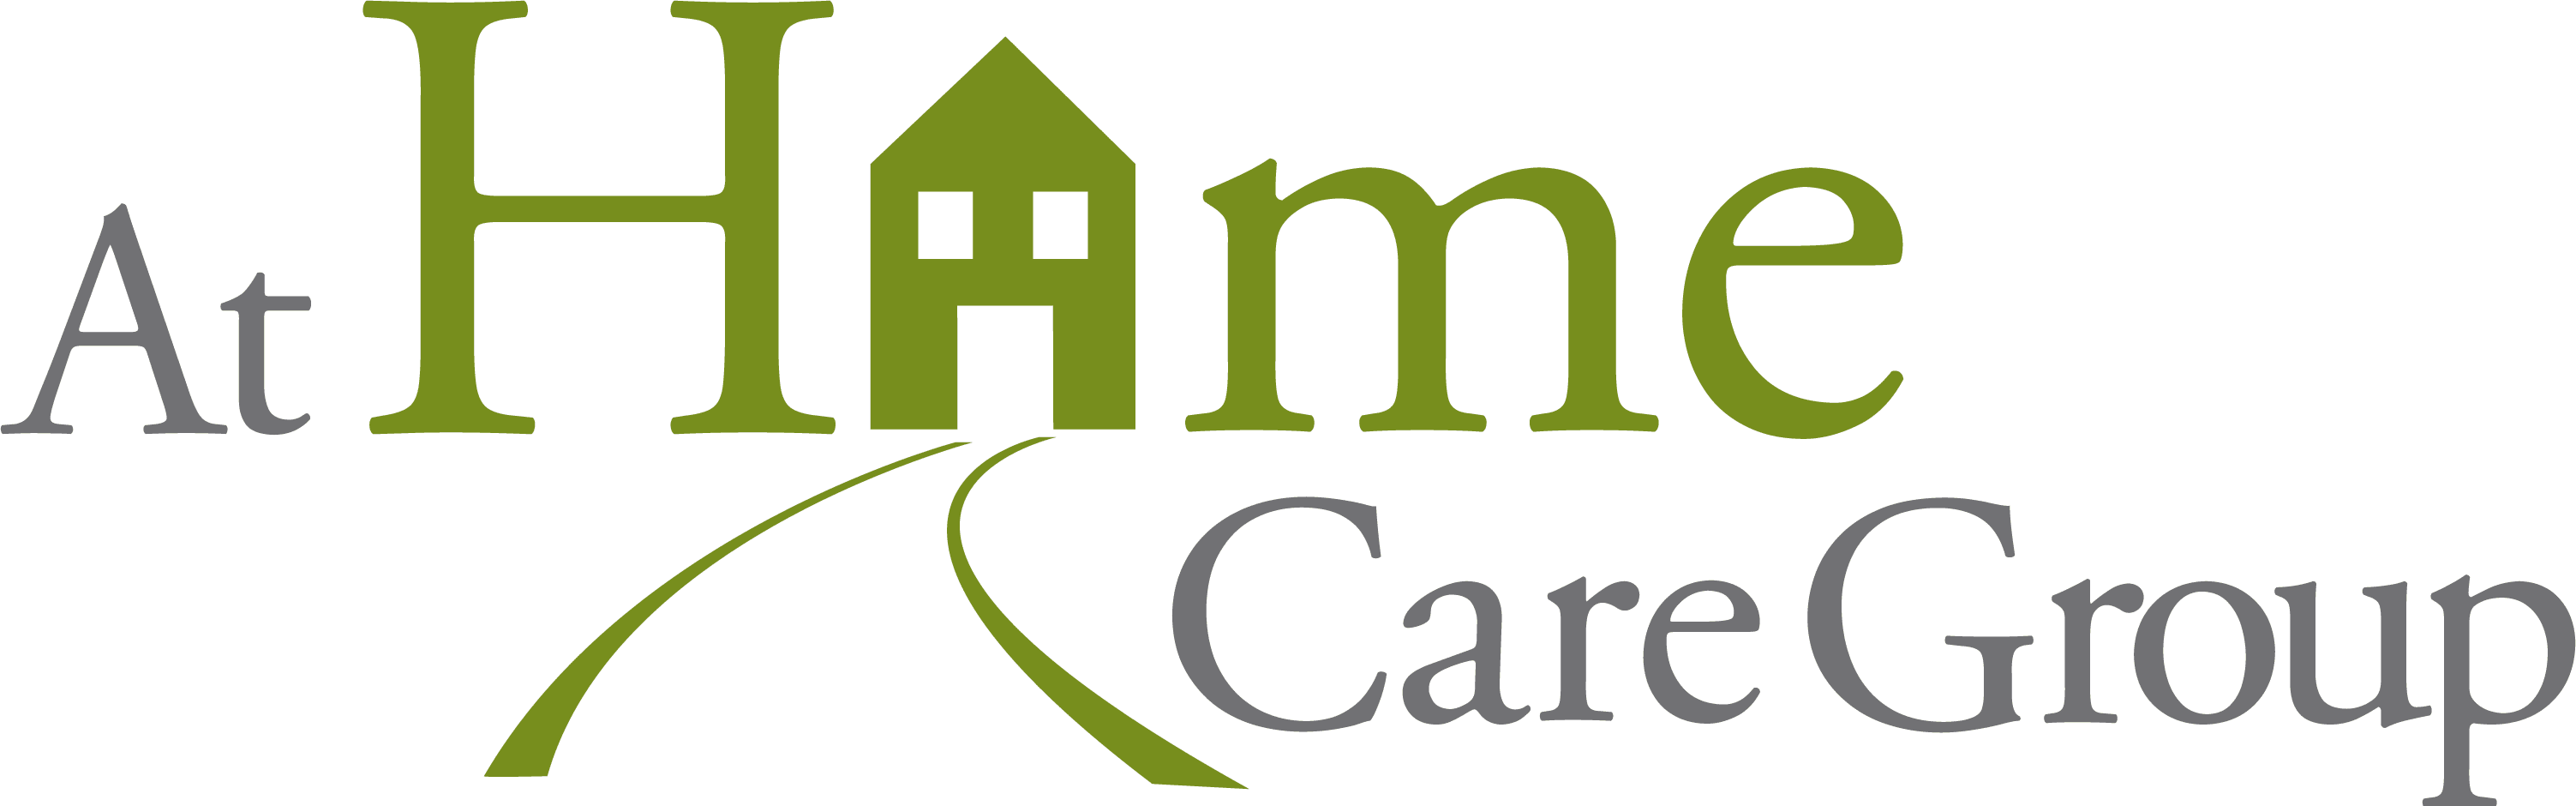 At Home Care Group